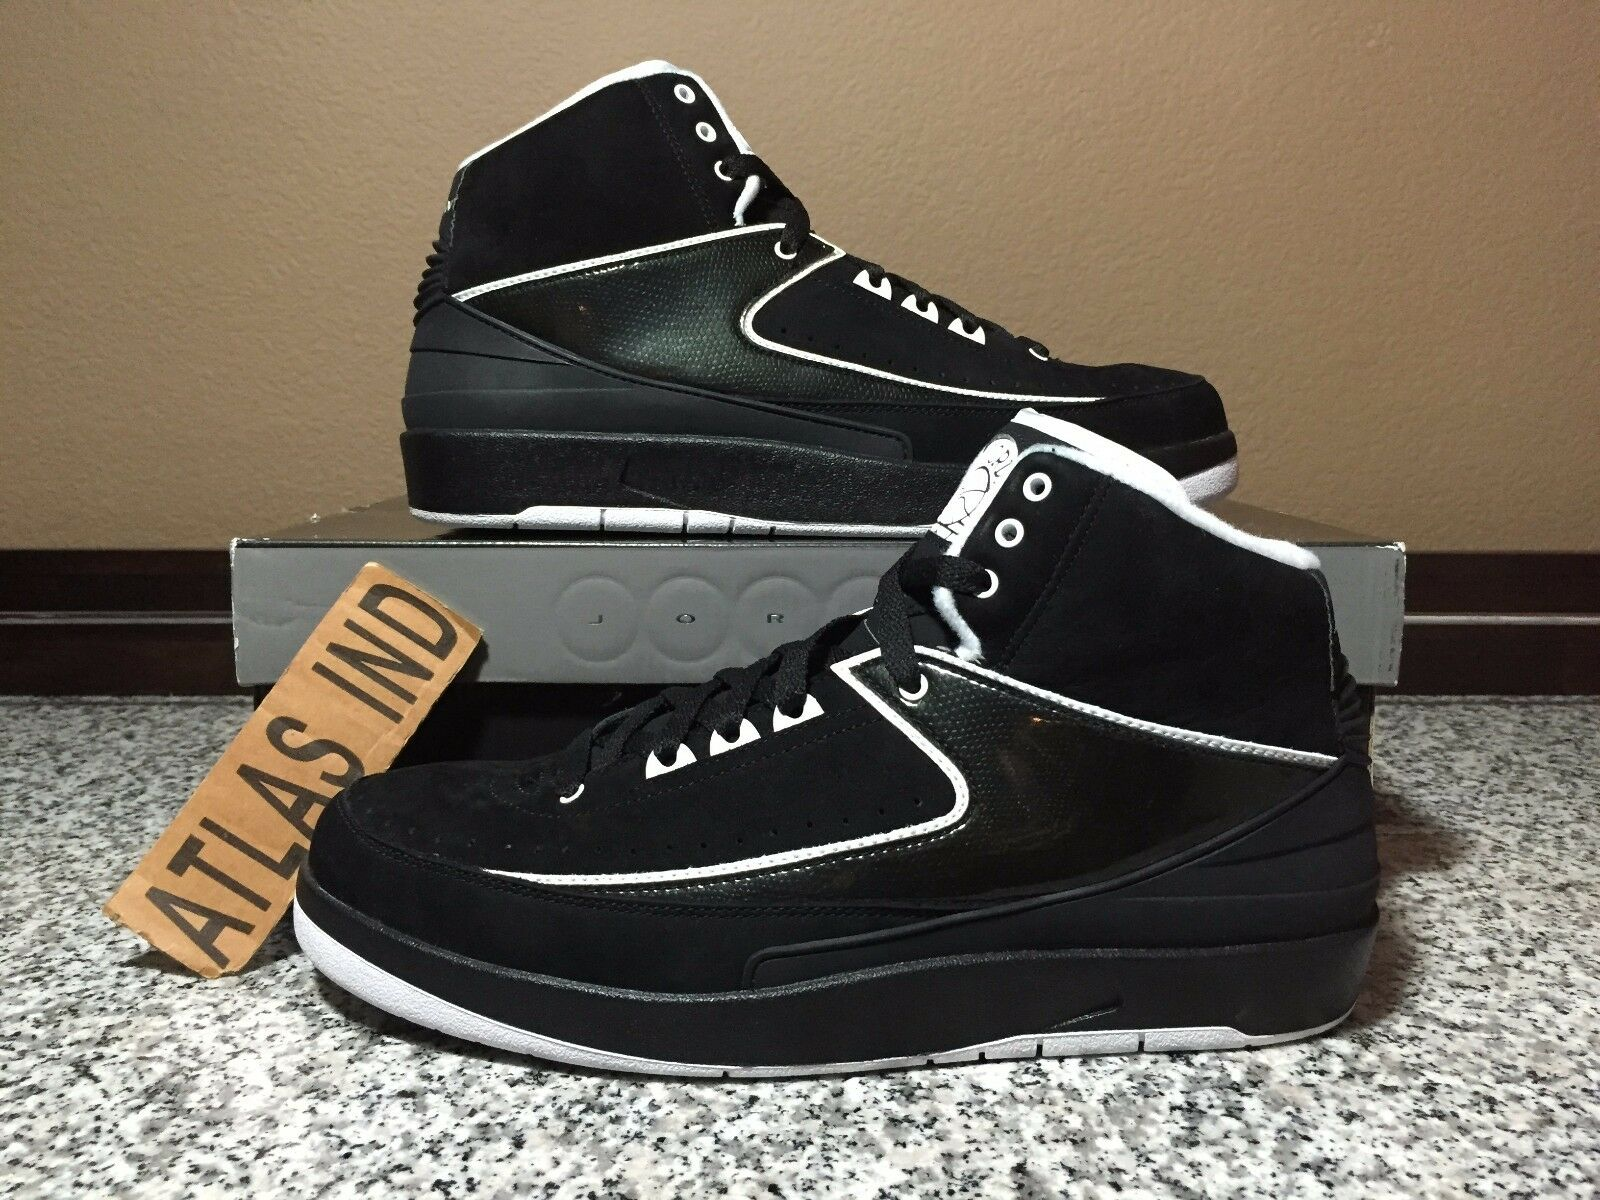 brand new b4146 9031d ... best price air jordan 2 retro qf black white nike ii 1 3 4 11 12 promo  code ...